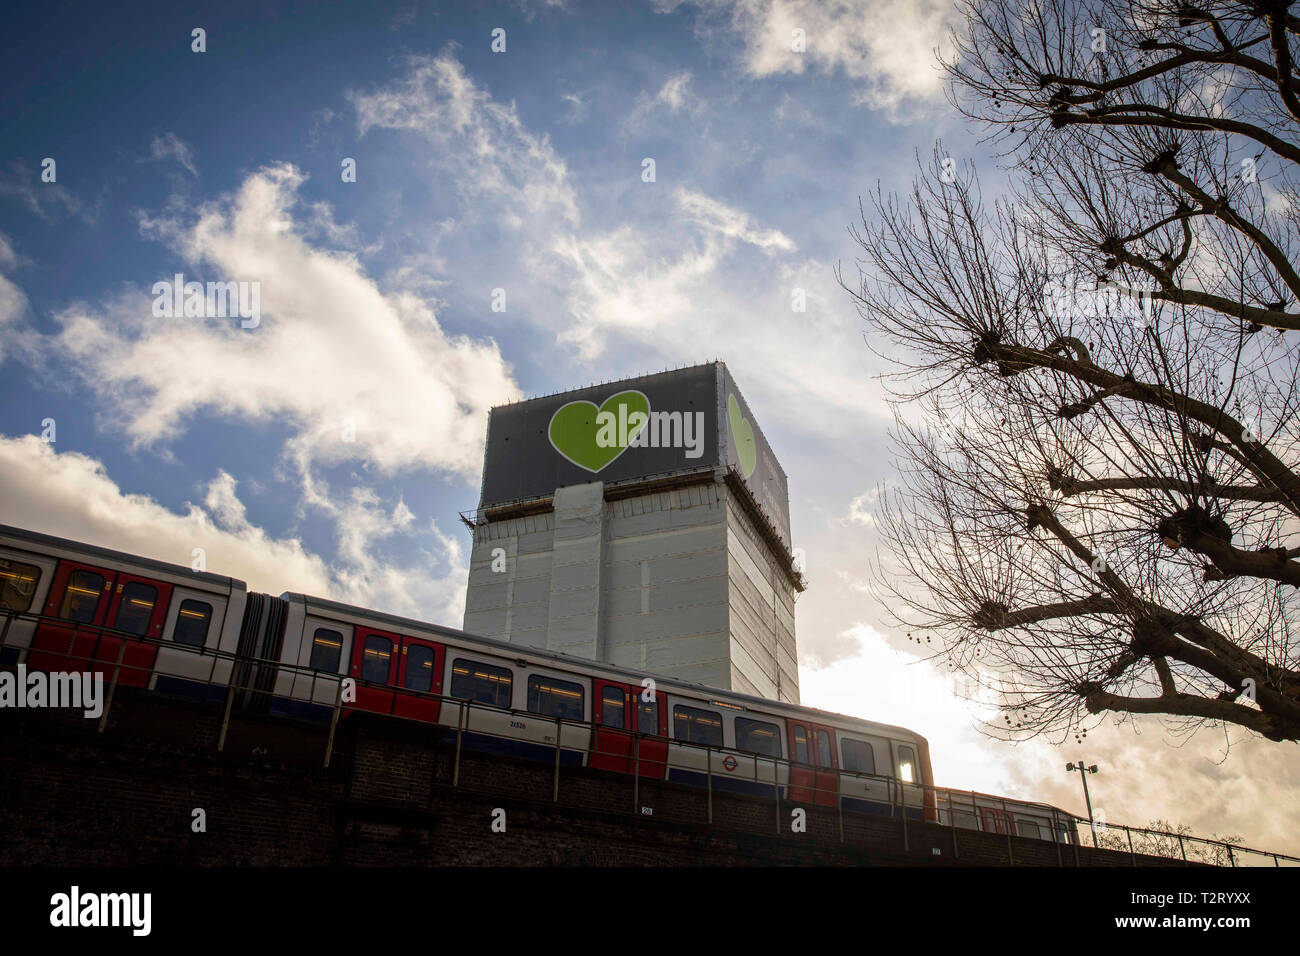 The top of Grenfell Tower pictured with a tube train in the foreground in December 2018. - Stock Image